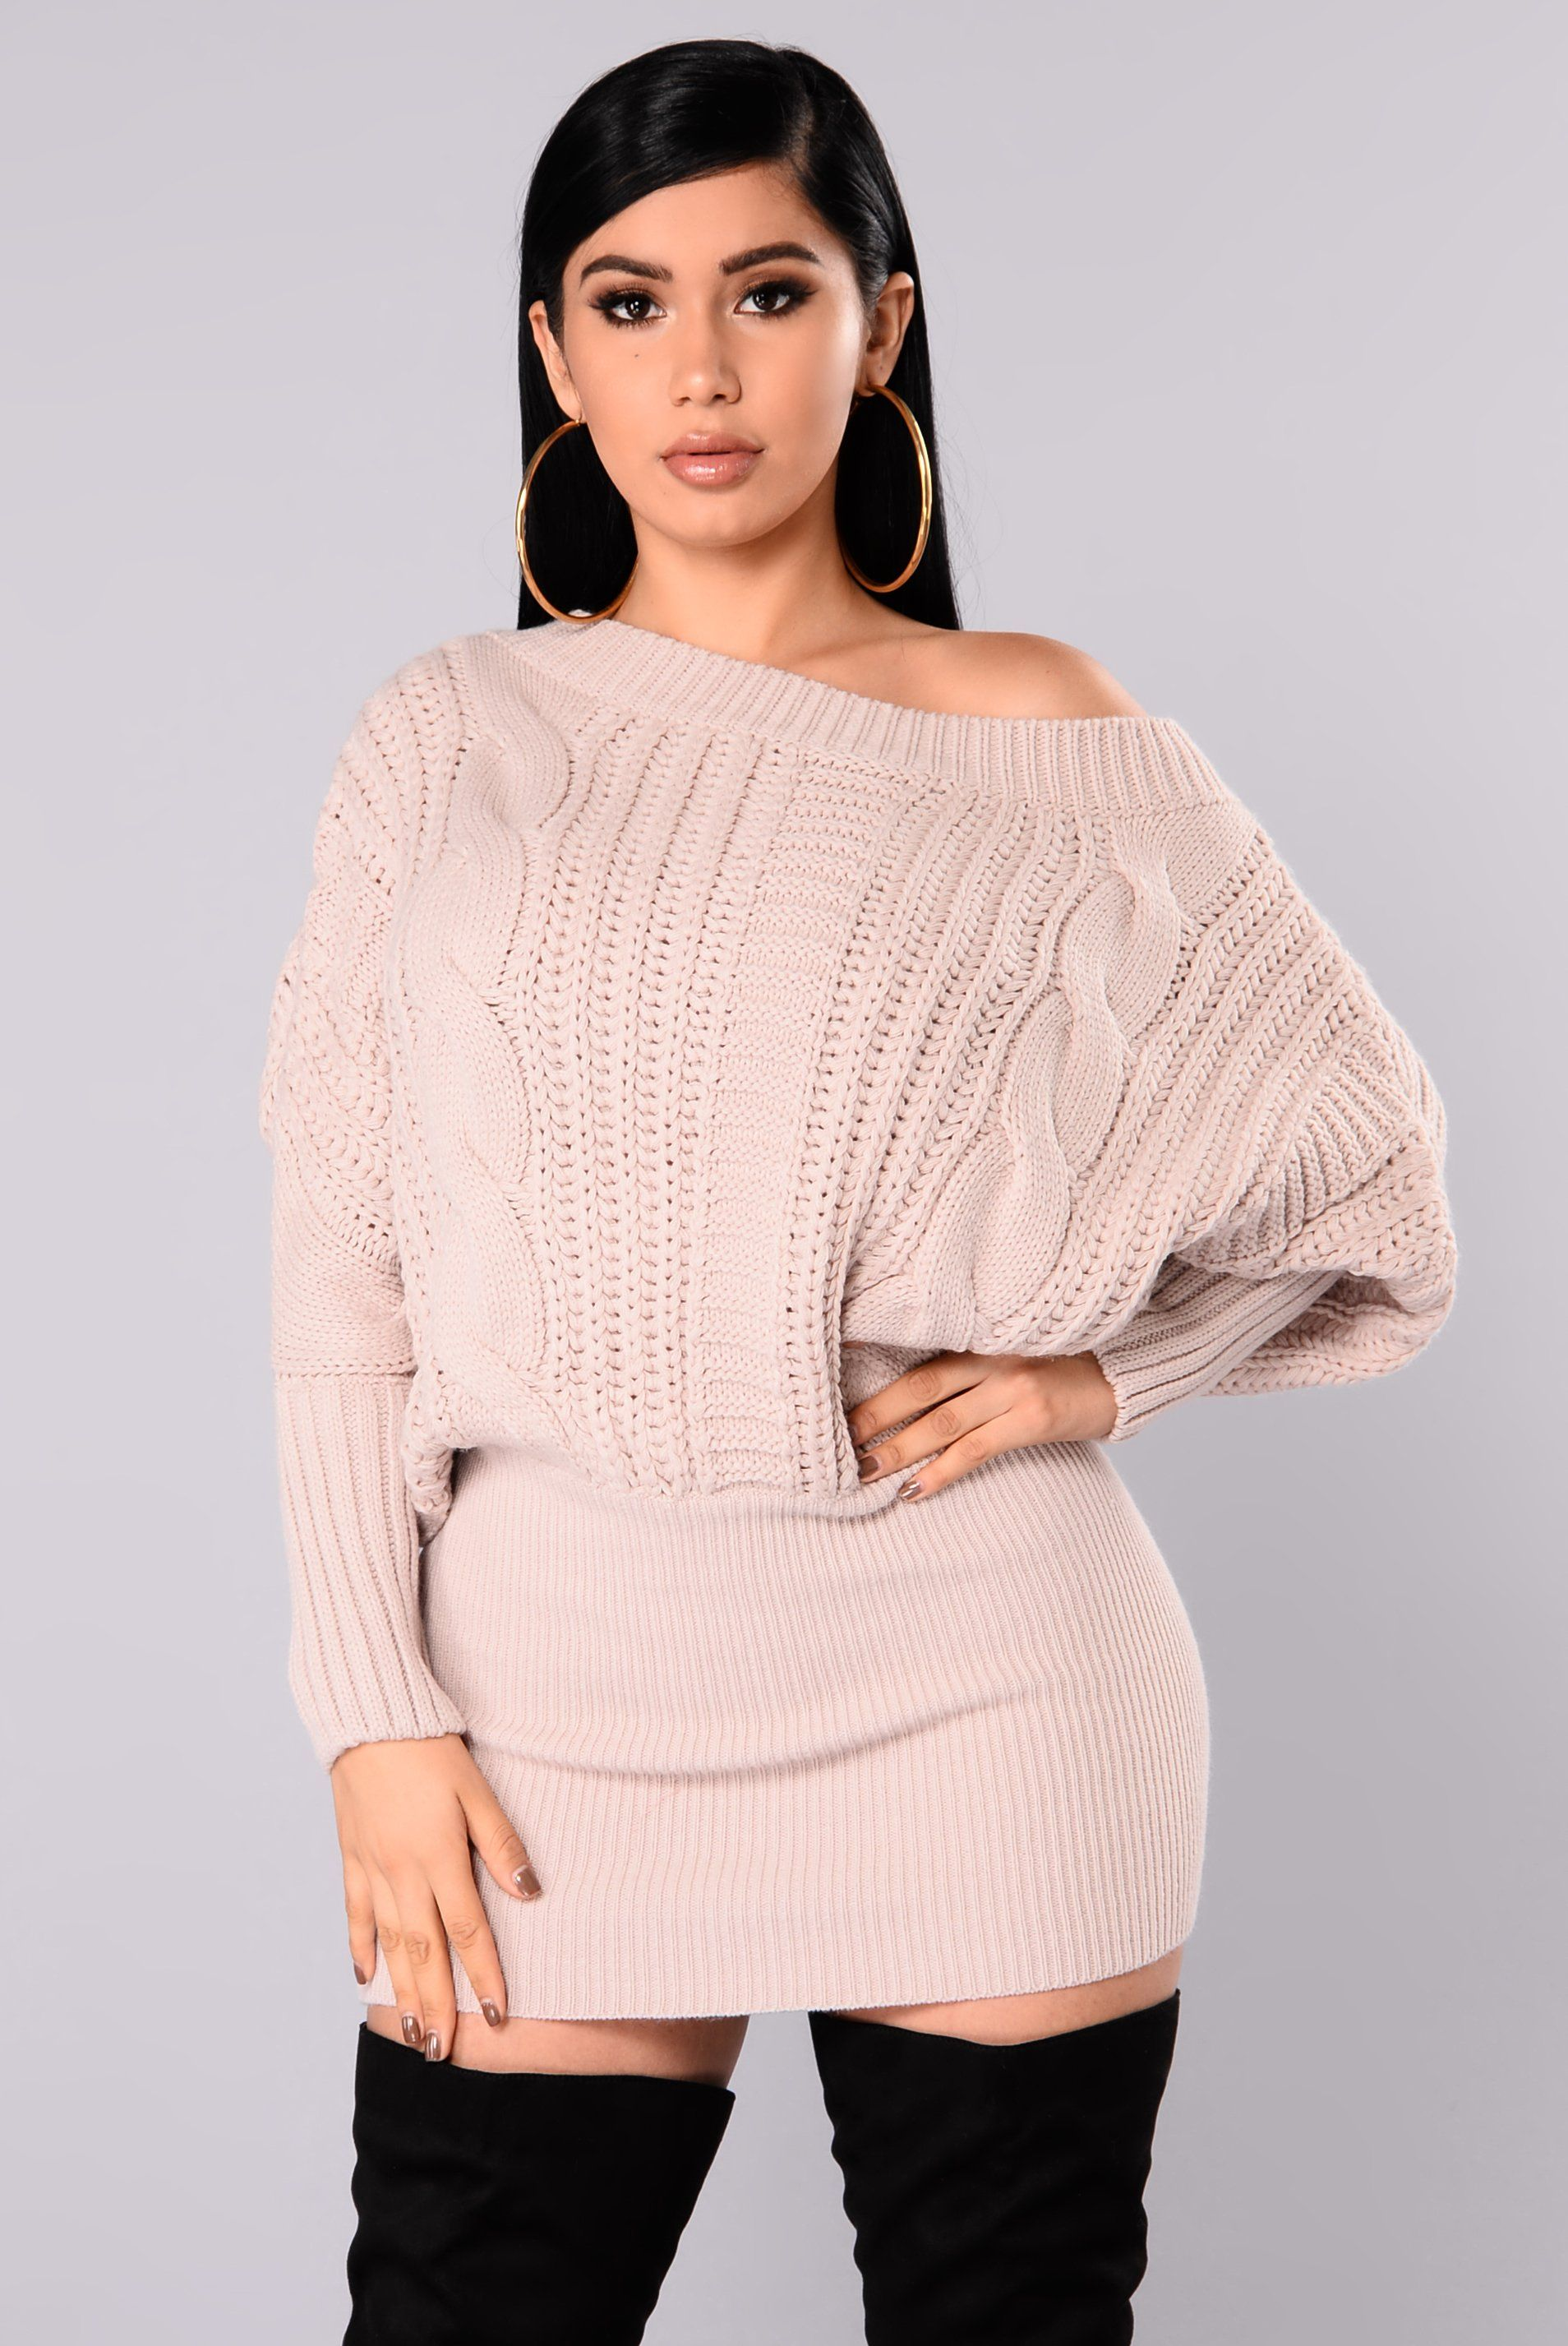 Millie Cable Knit Sweater - Mauve | Cable knit sweaters, Mauve and ...